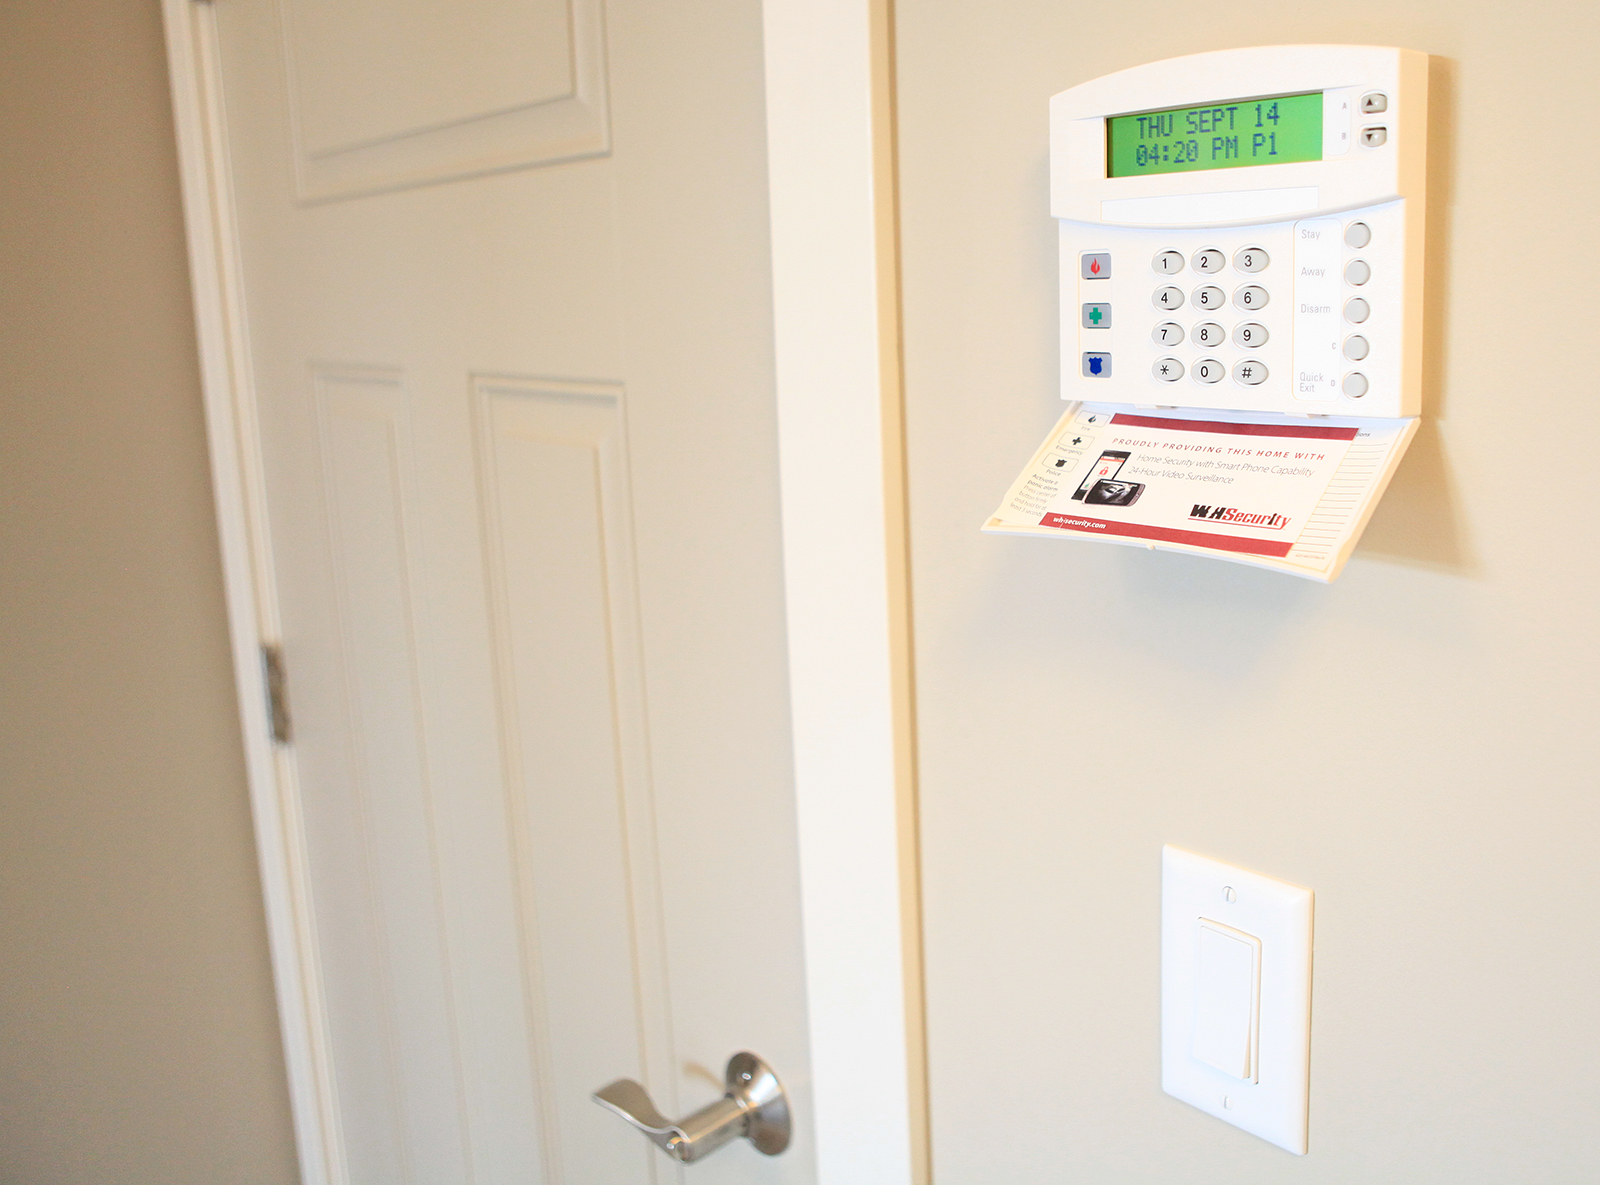 Parade of Homes security system